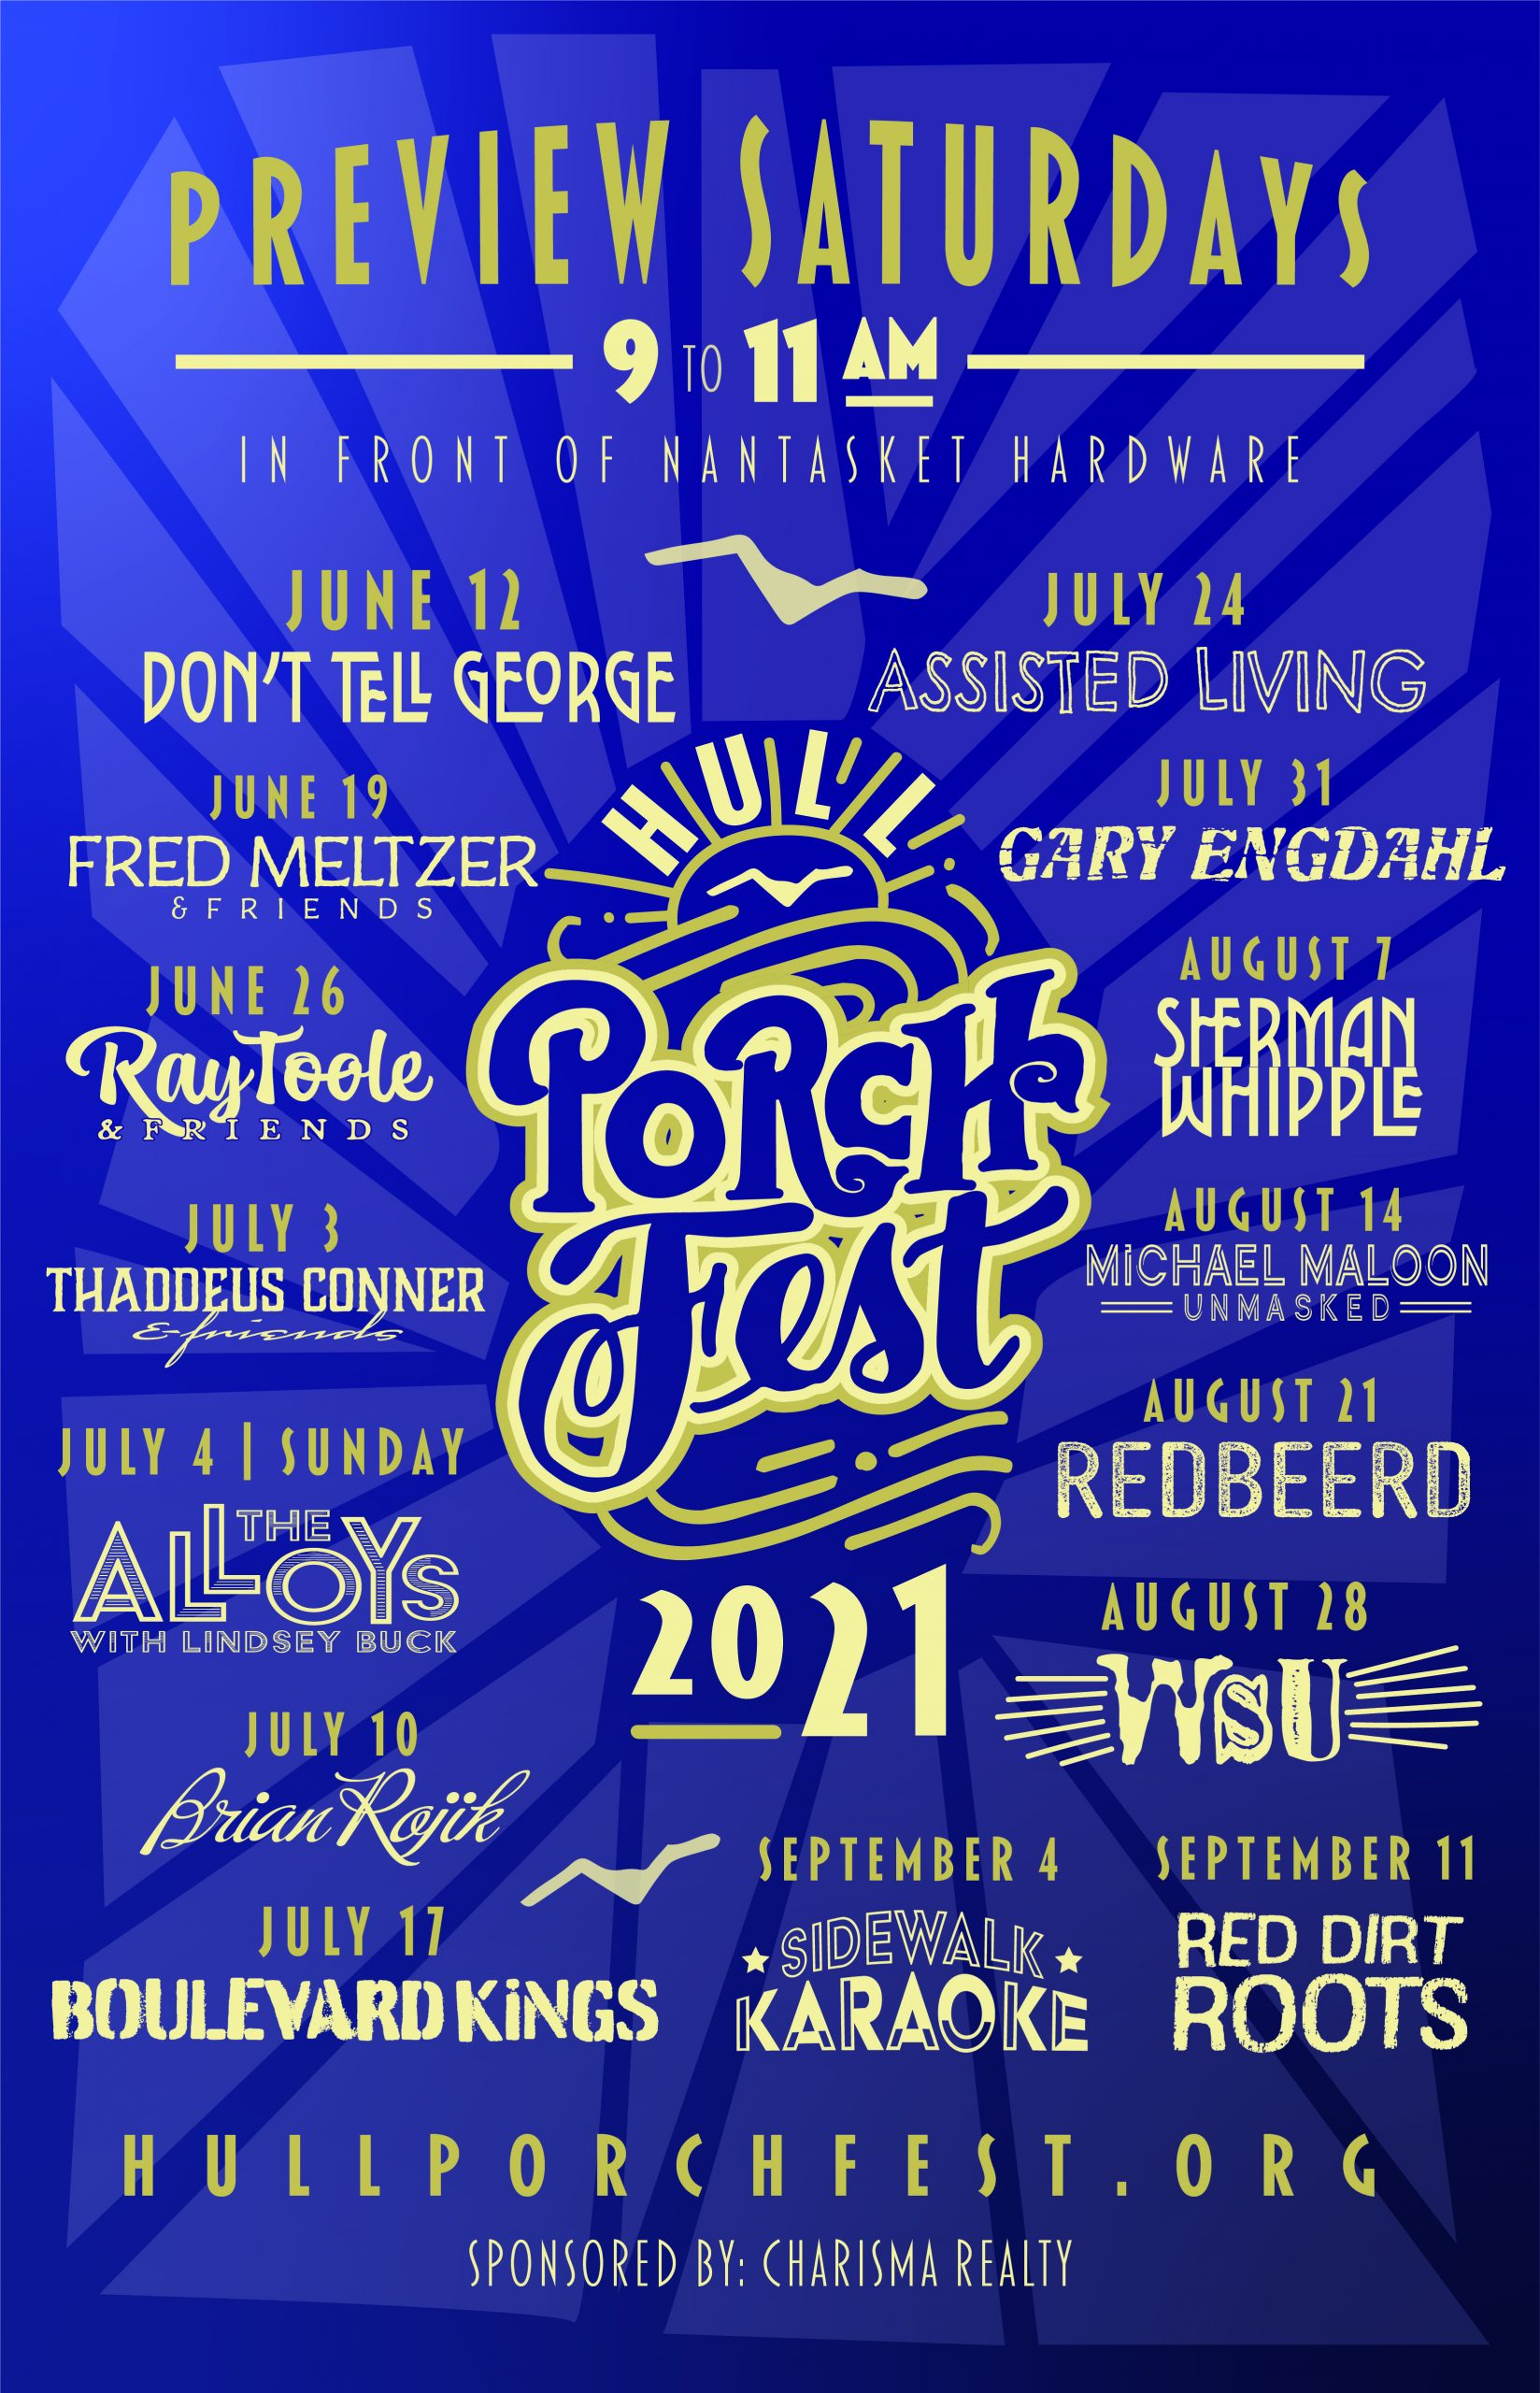 hull porchfest preview saturdays poster